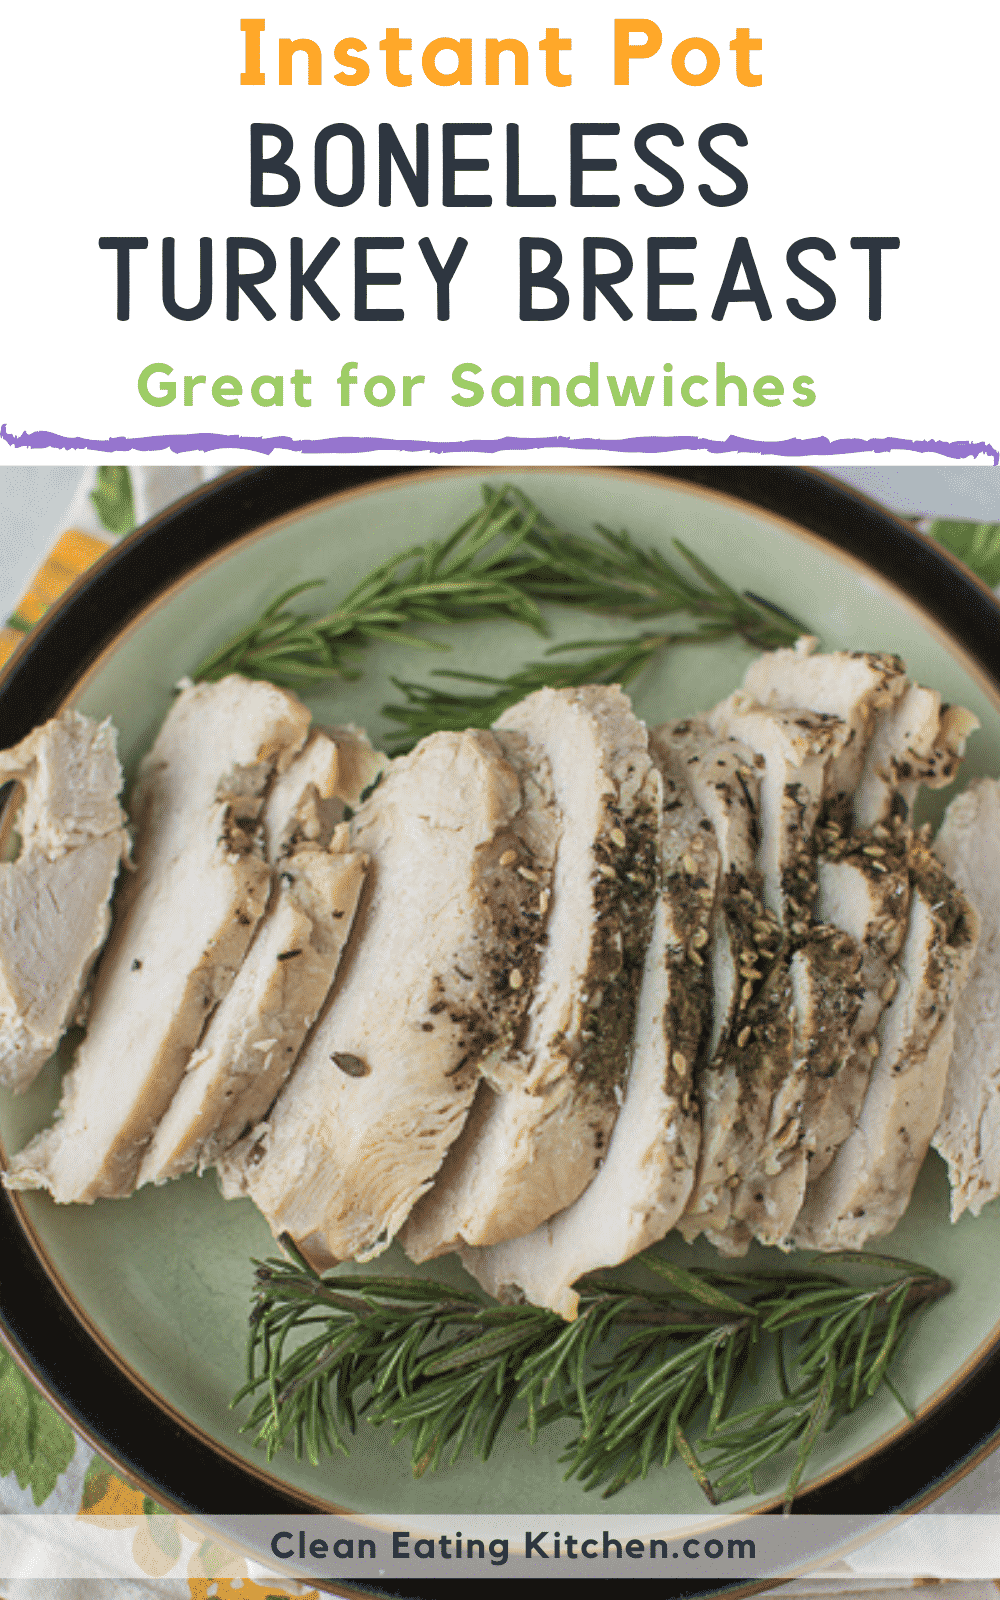 Instant Pot Boneless Turkey Breast - Clean Eating Kitchen -   19 instant pot boneless turkey breast recipes ideas